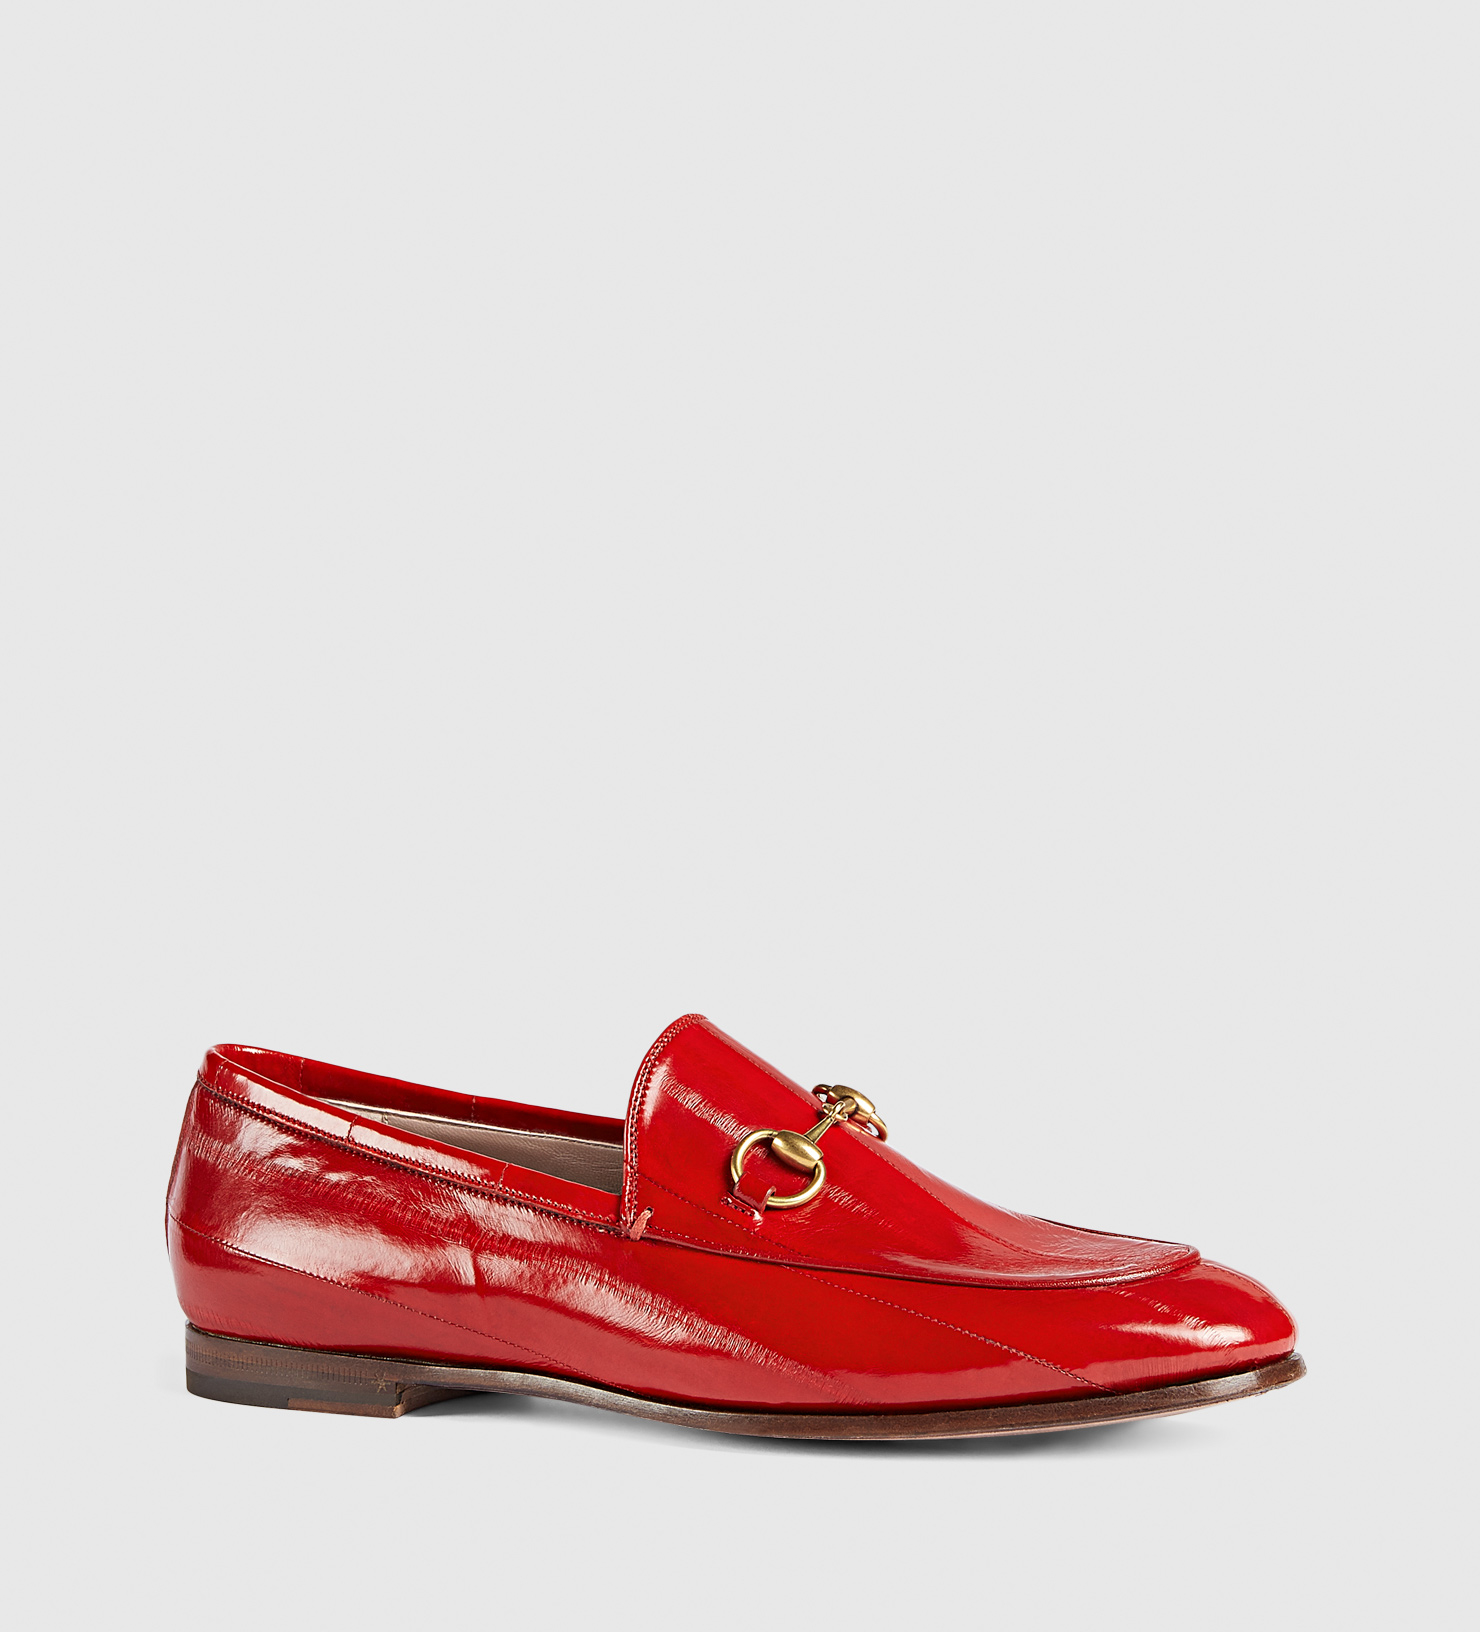 3a0622d61e8 Lyst - Gucci Jordaan Eel Loafer in Red